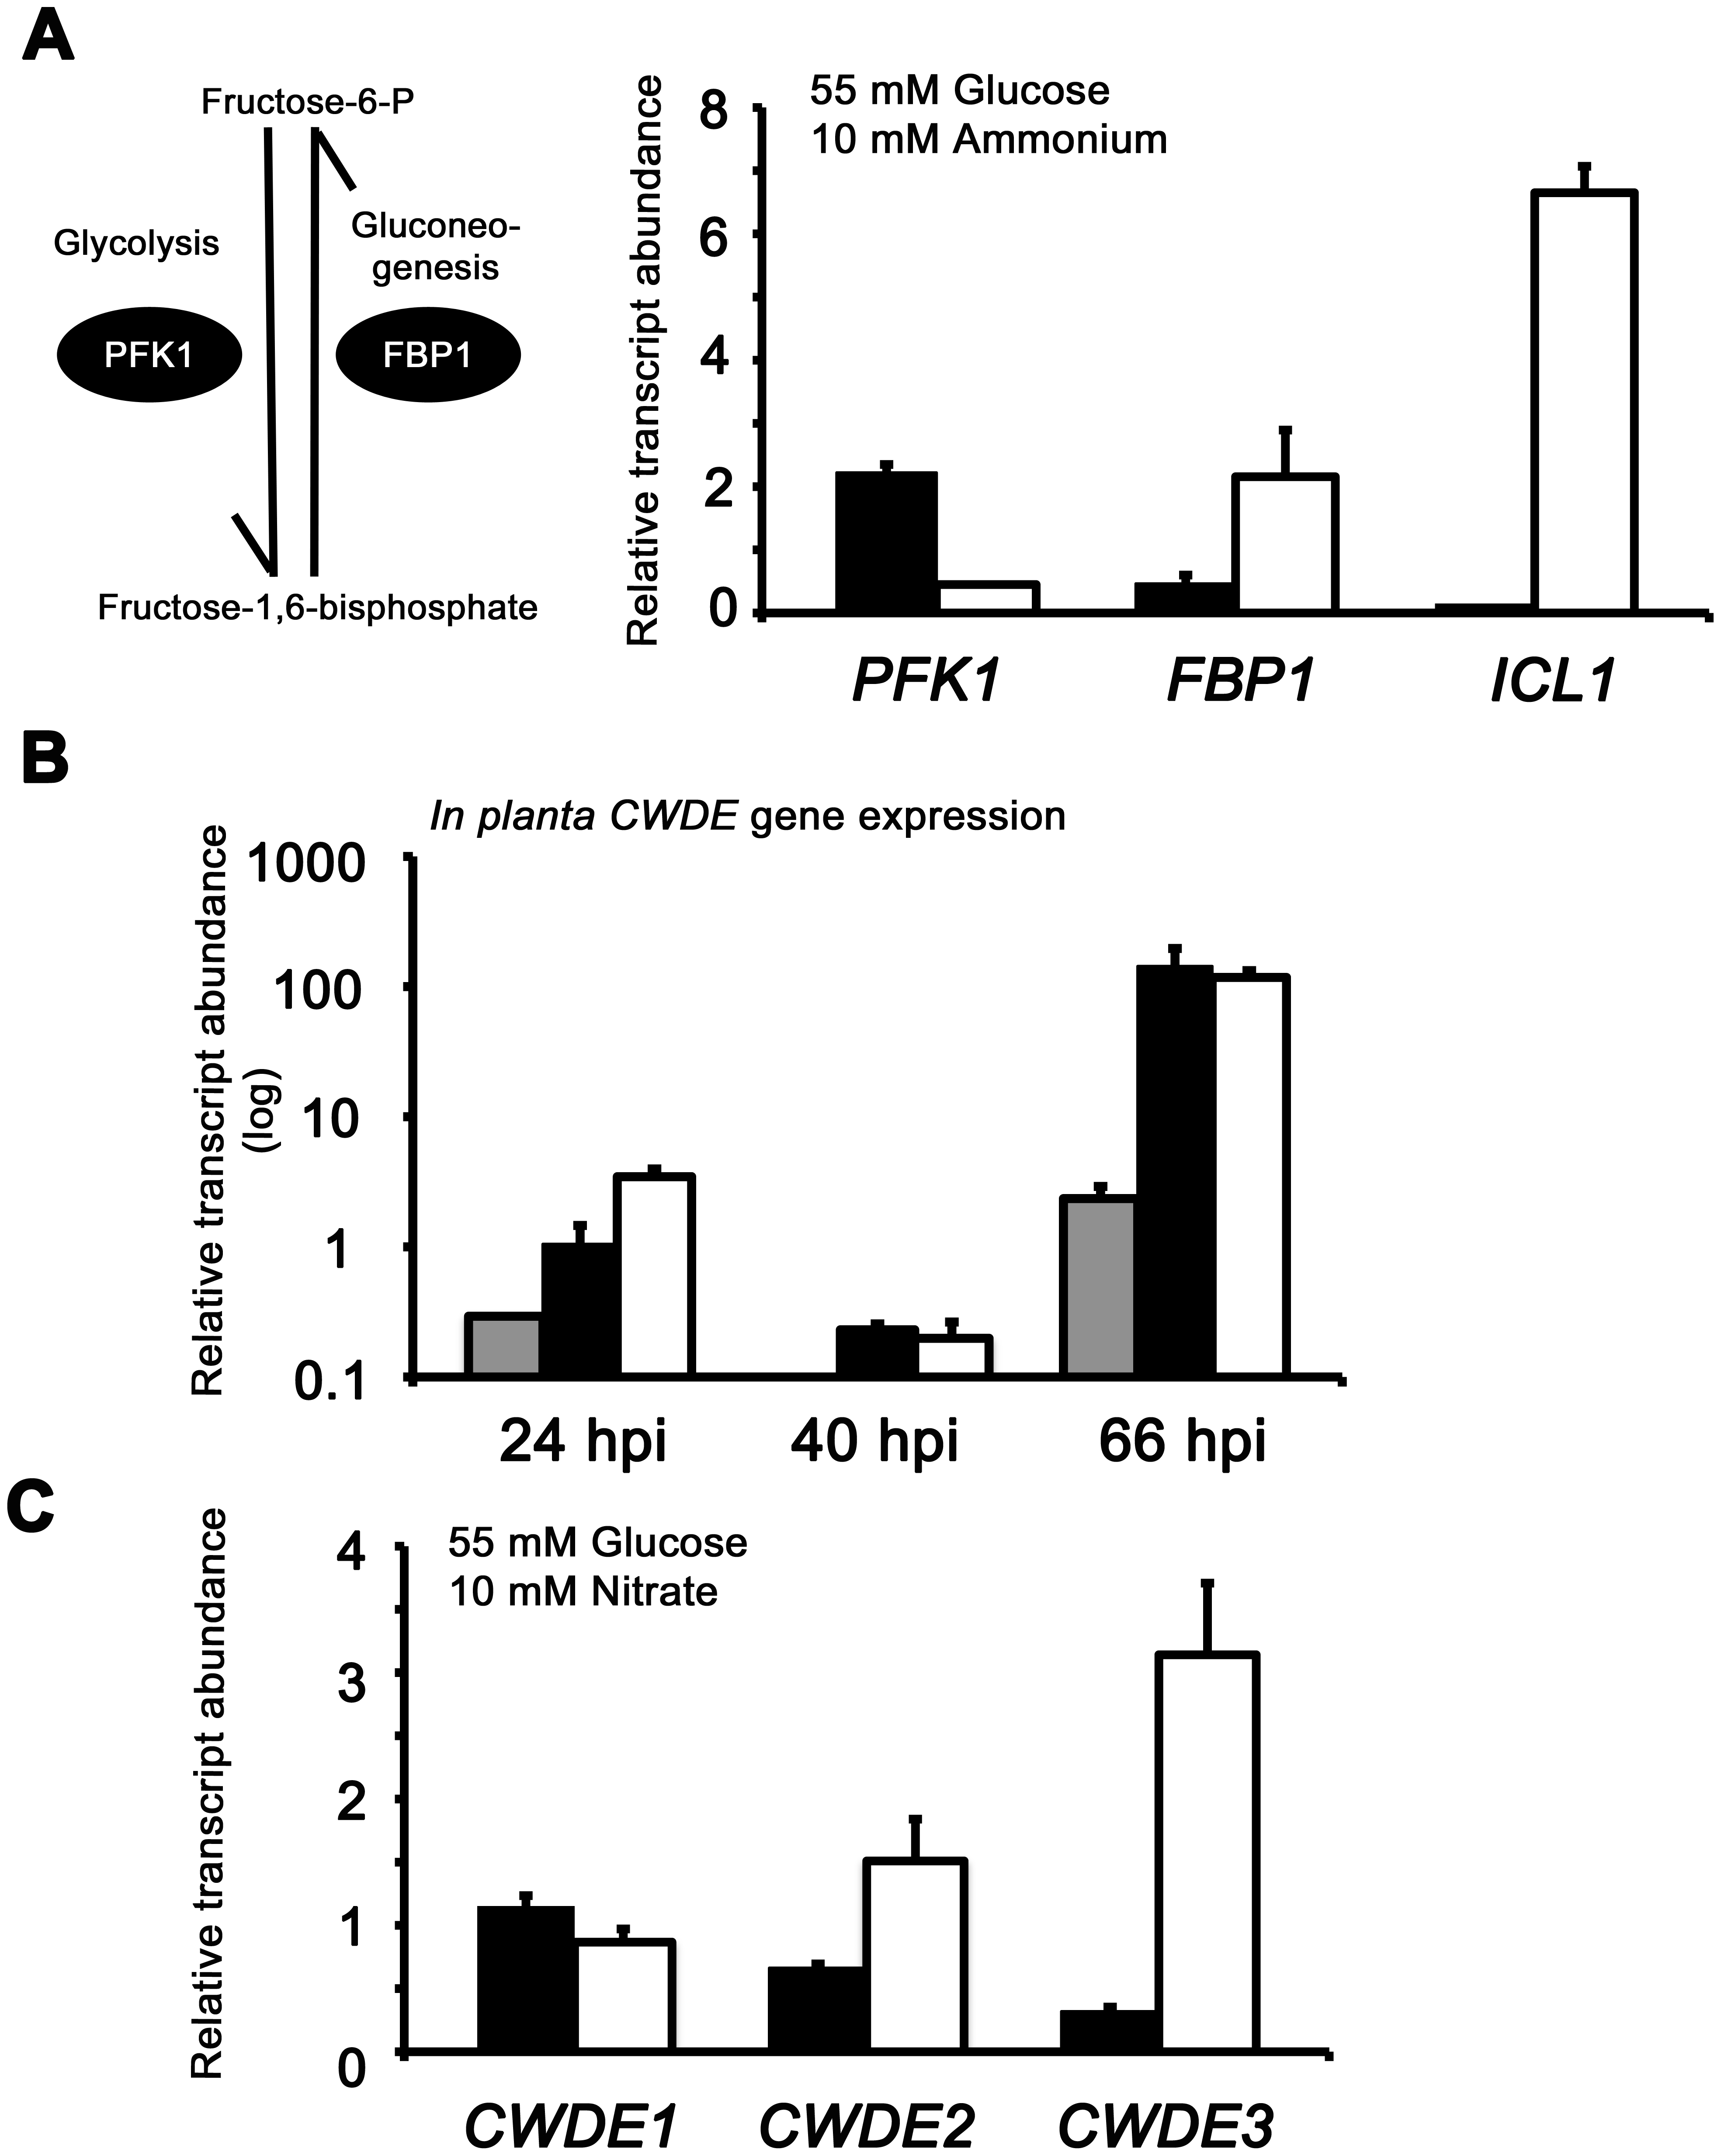 Inactivating CCR in Δ<i>tps1</i> strains results in the misregulated expression of genes for assimilating glucose and metabolizing alternative carbon sources.